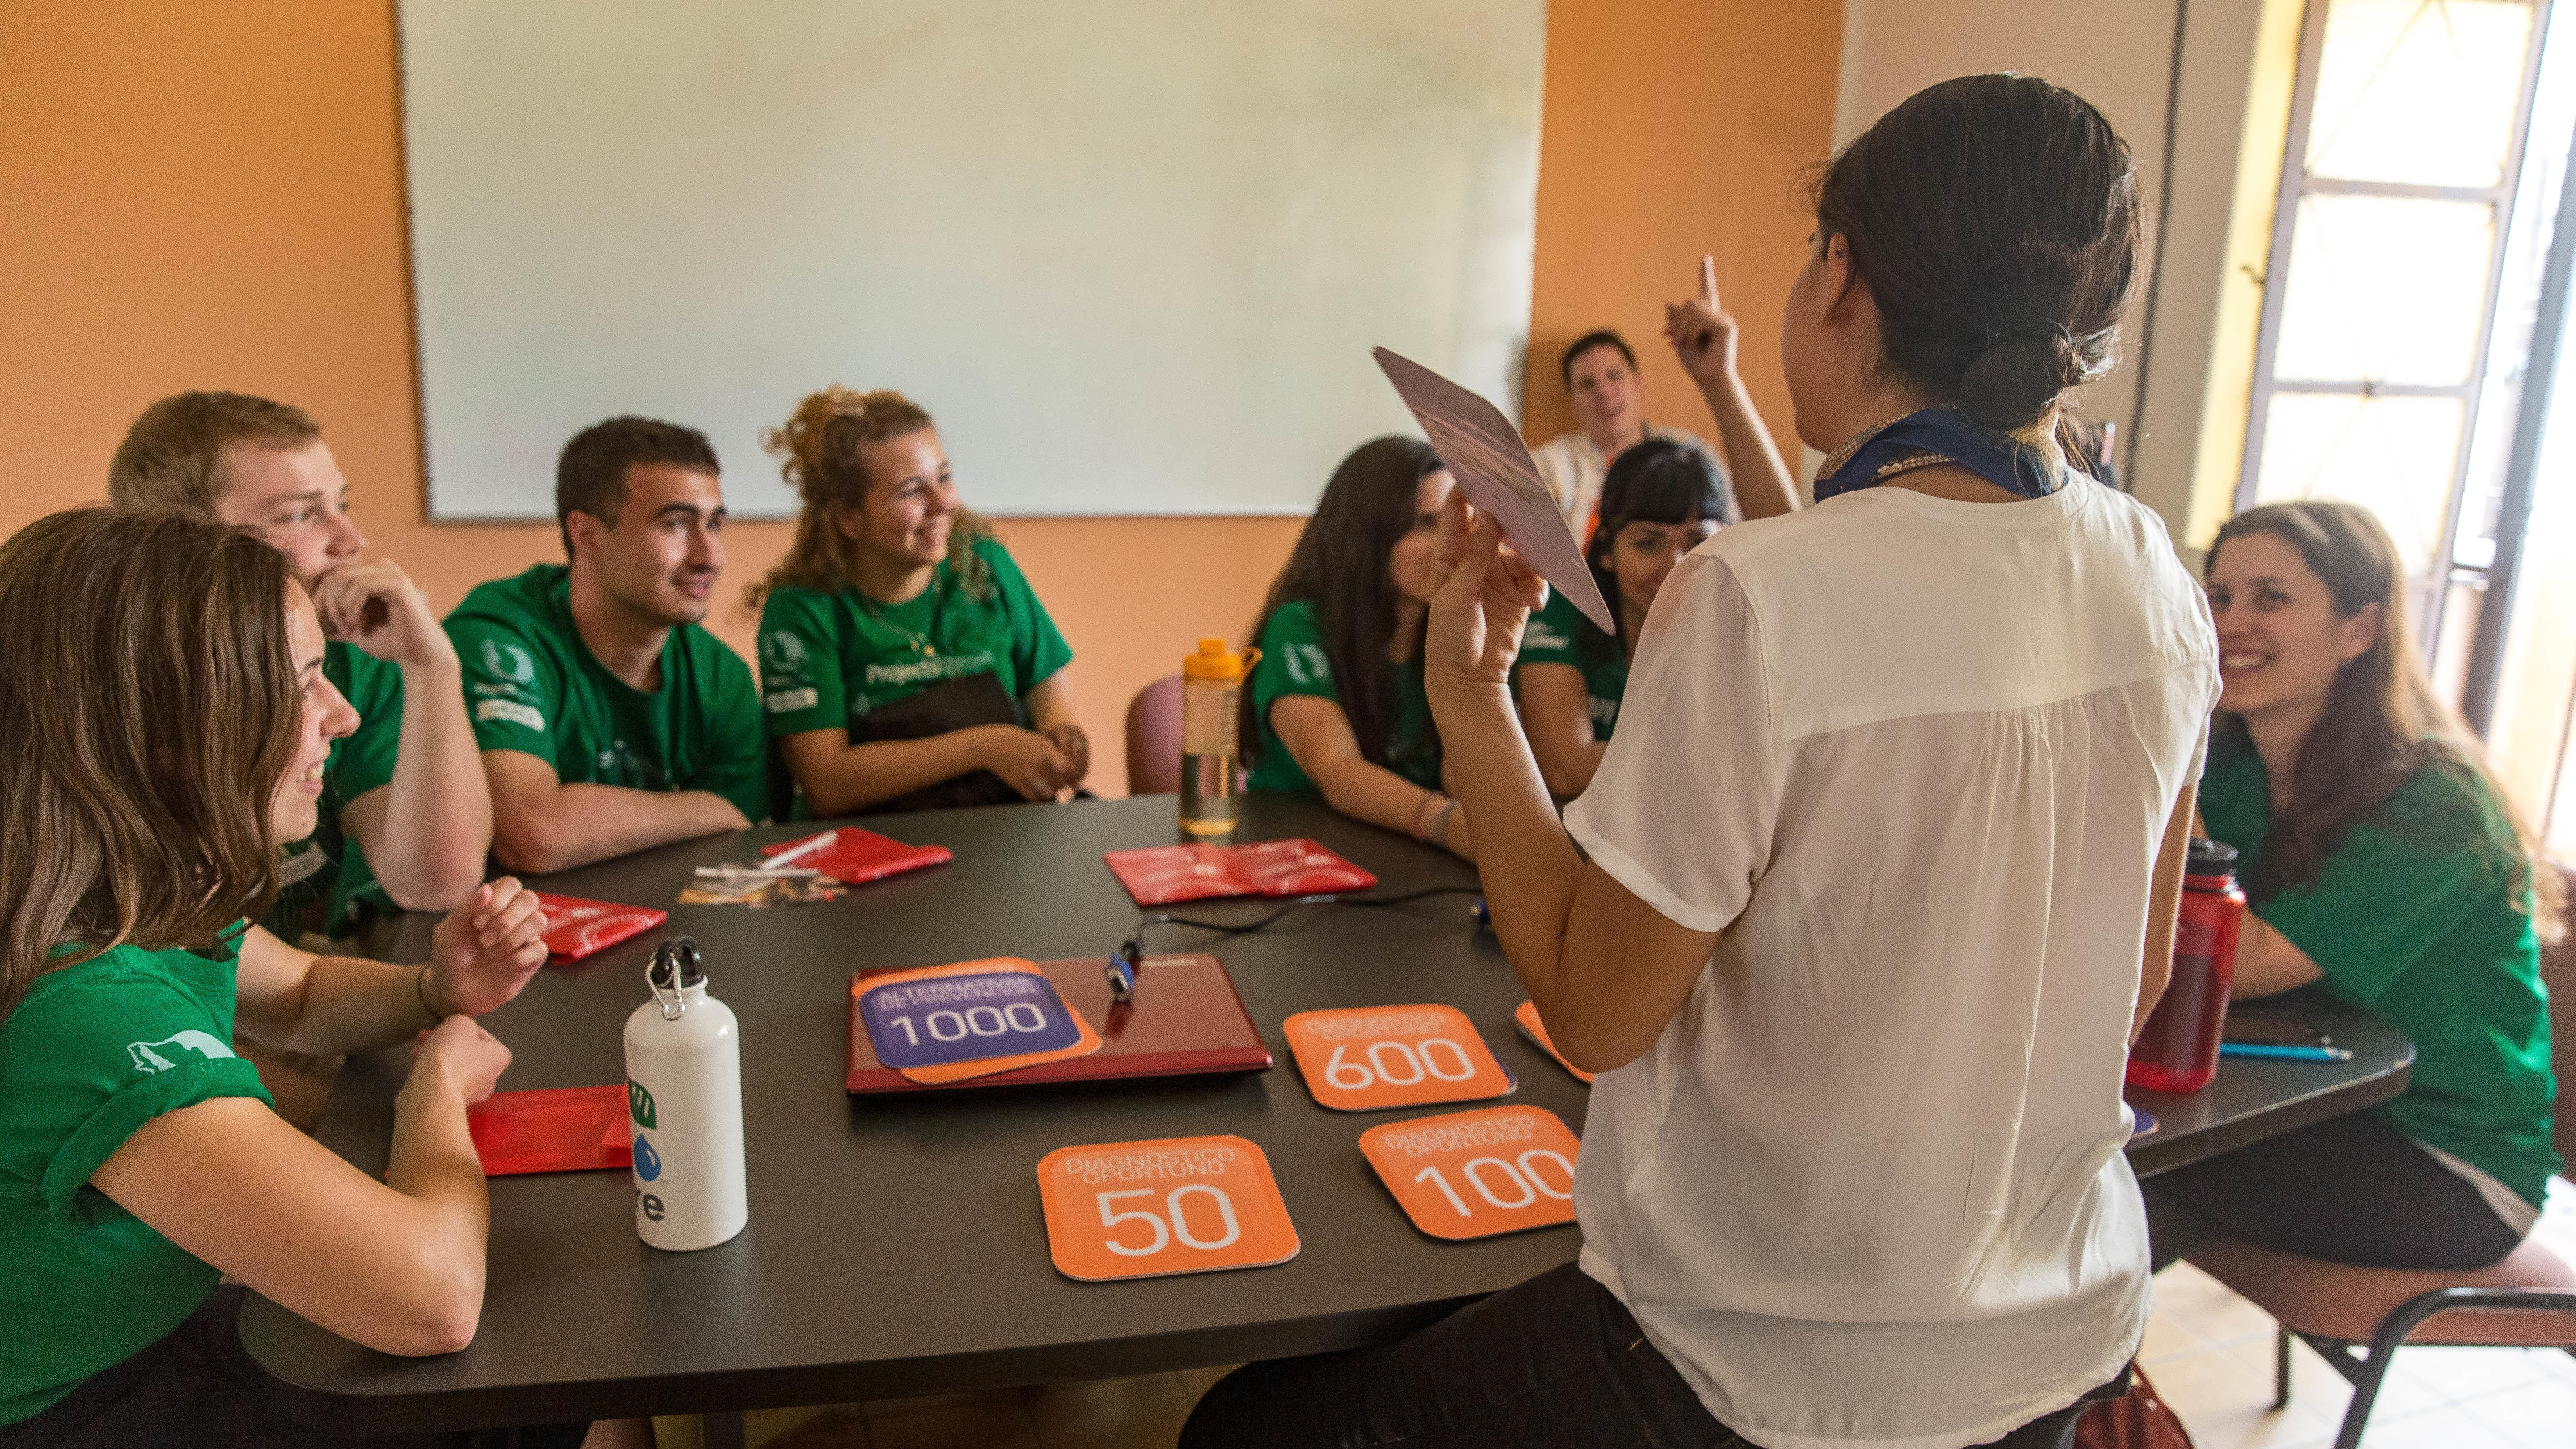 Projects Abroad interns playing a medical diagnosis game during their physiotherapy internship in Mexico.